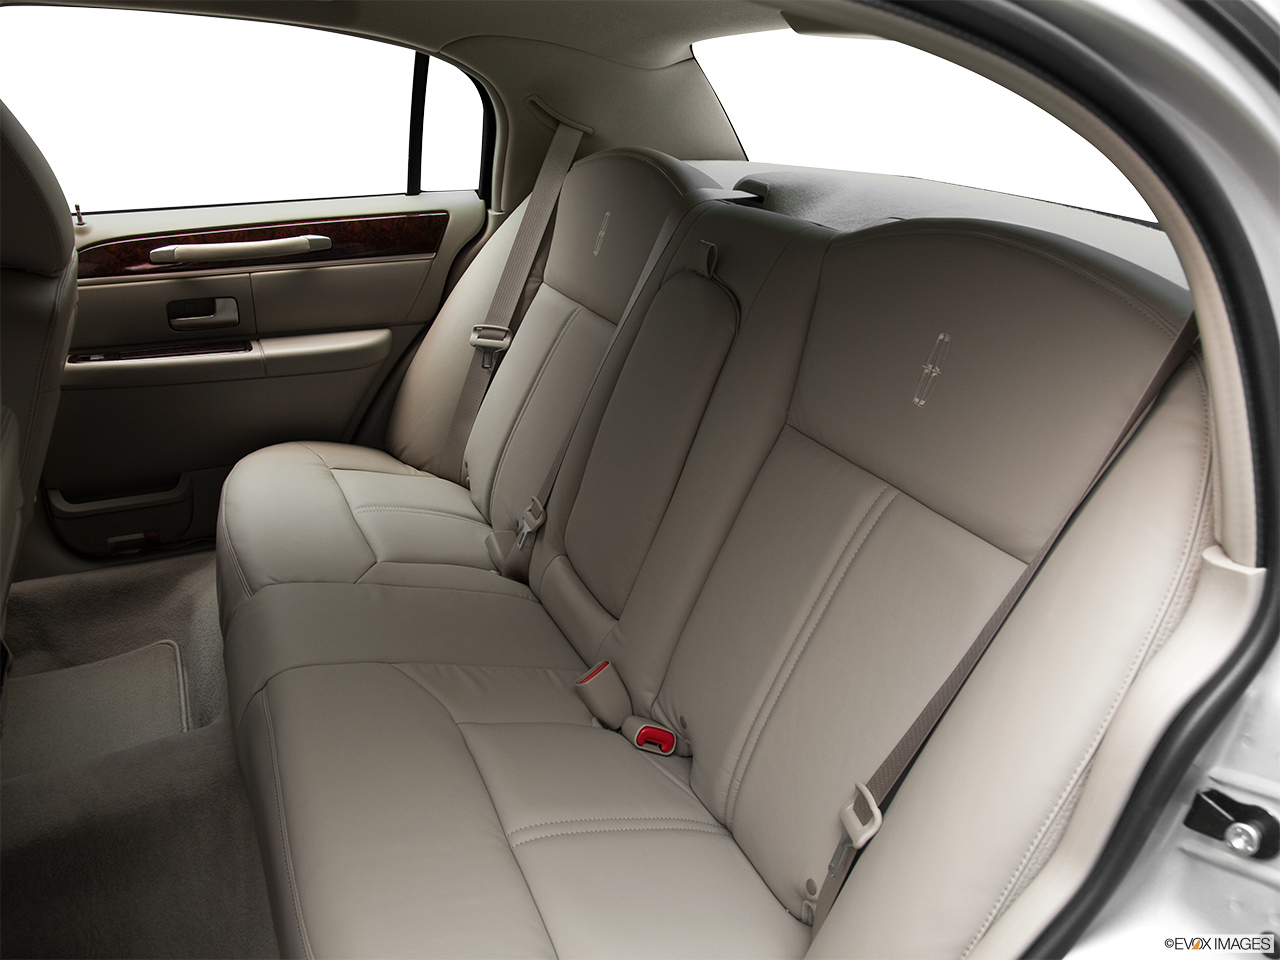 2011 Lincoln Town Car Signature Limited Rear seats from Drivers Side.